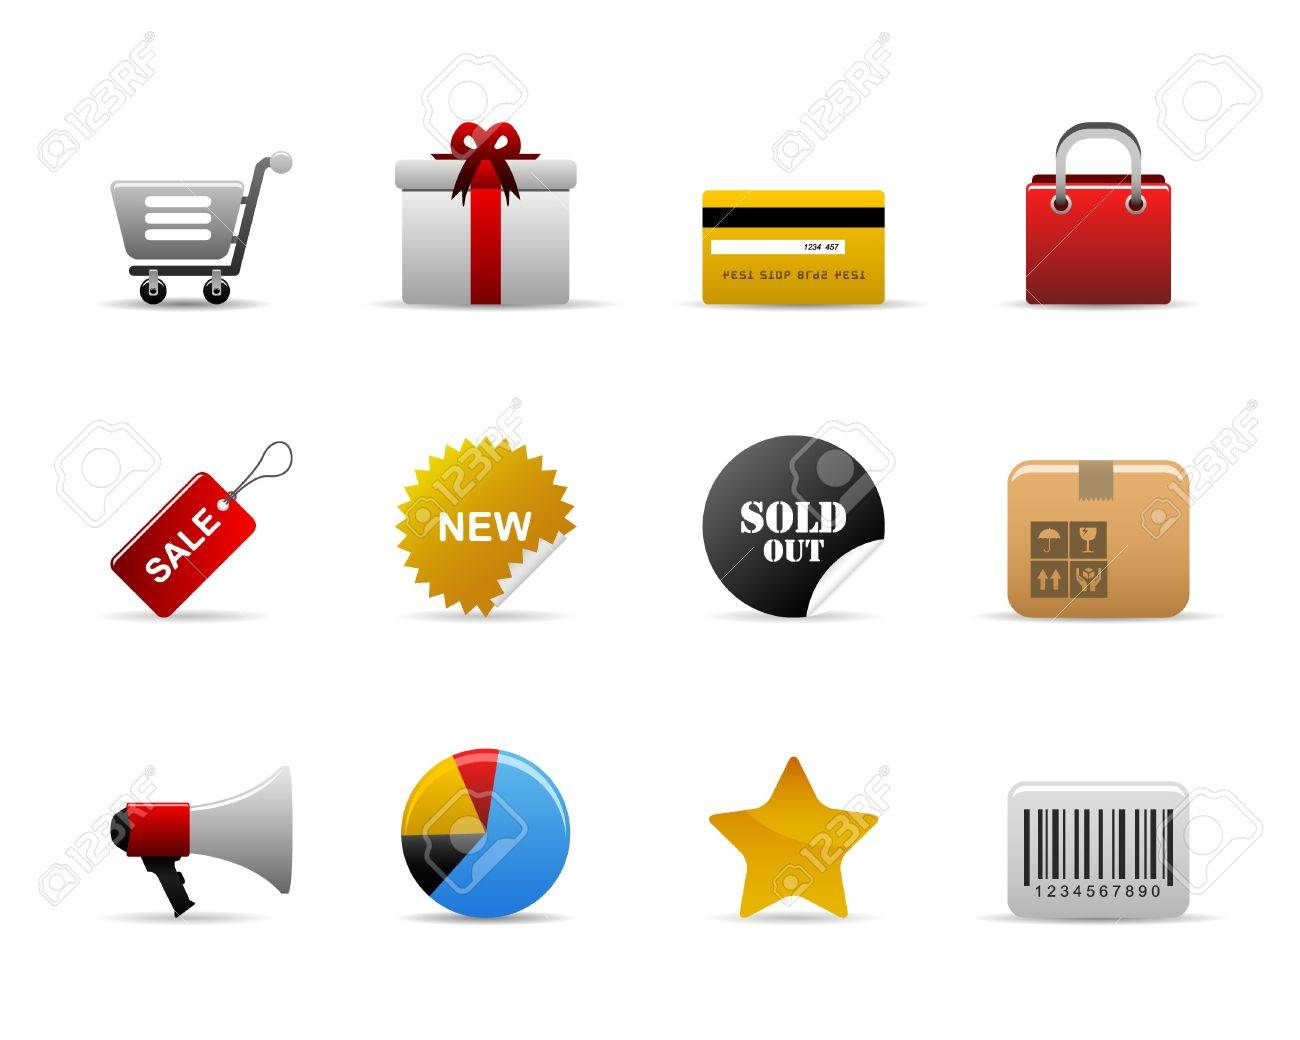 ecommerce Icons Vector Stock Vector - 7796624